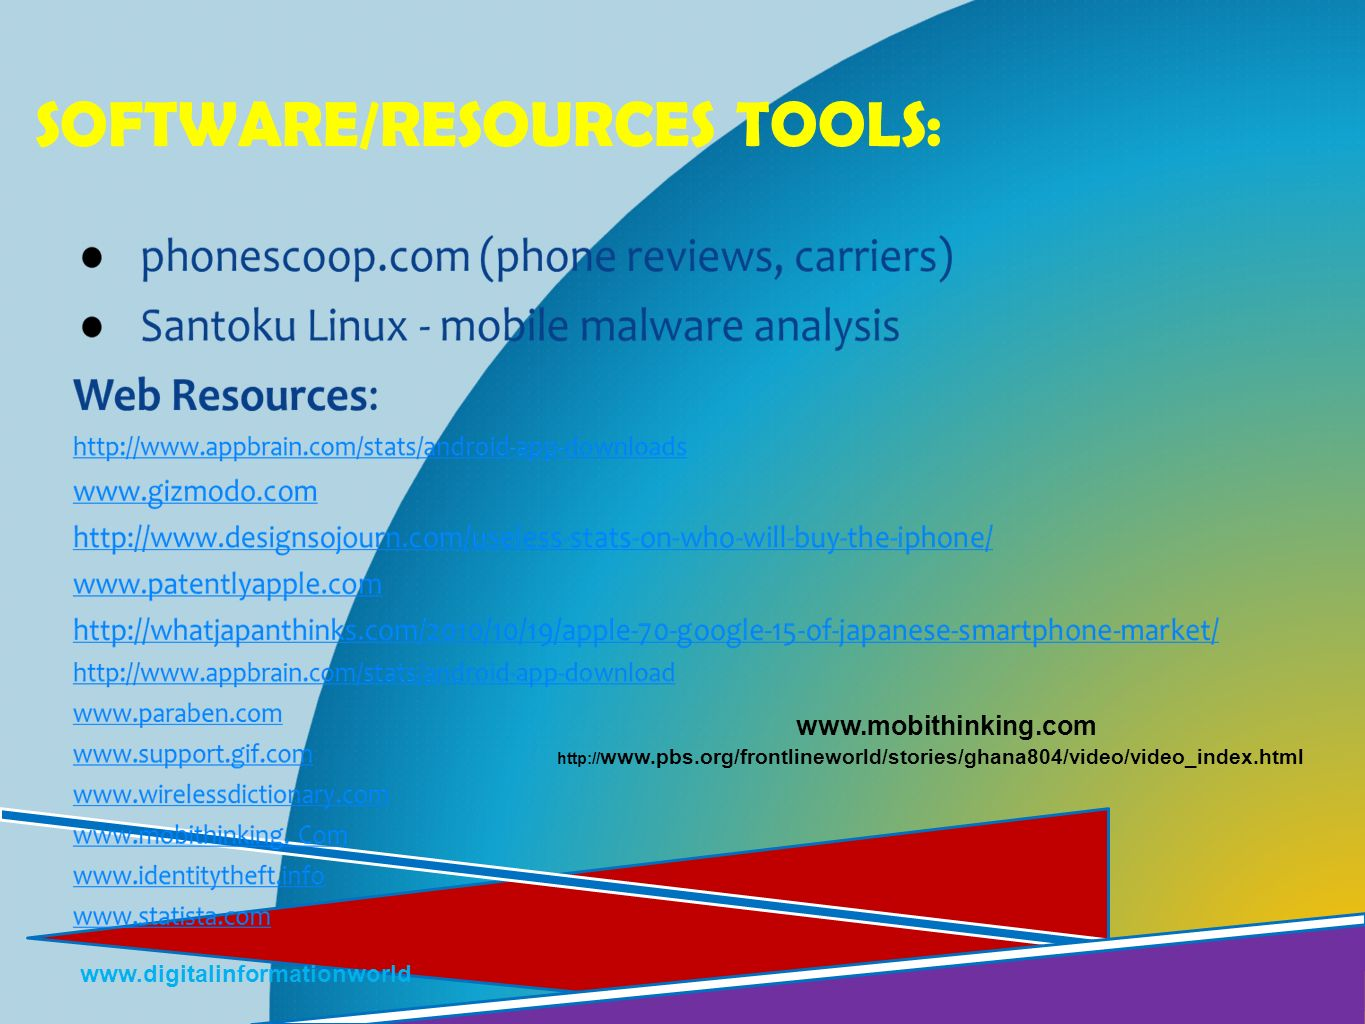 Software/Resources Tools: